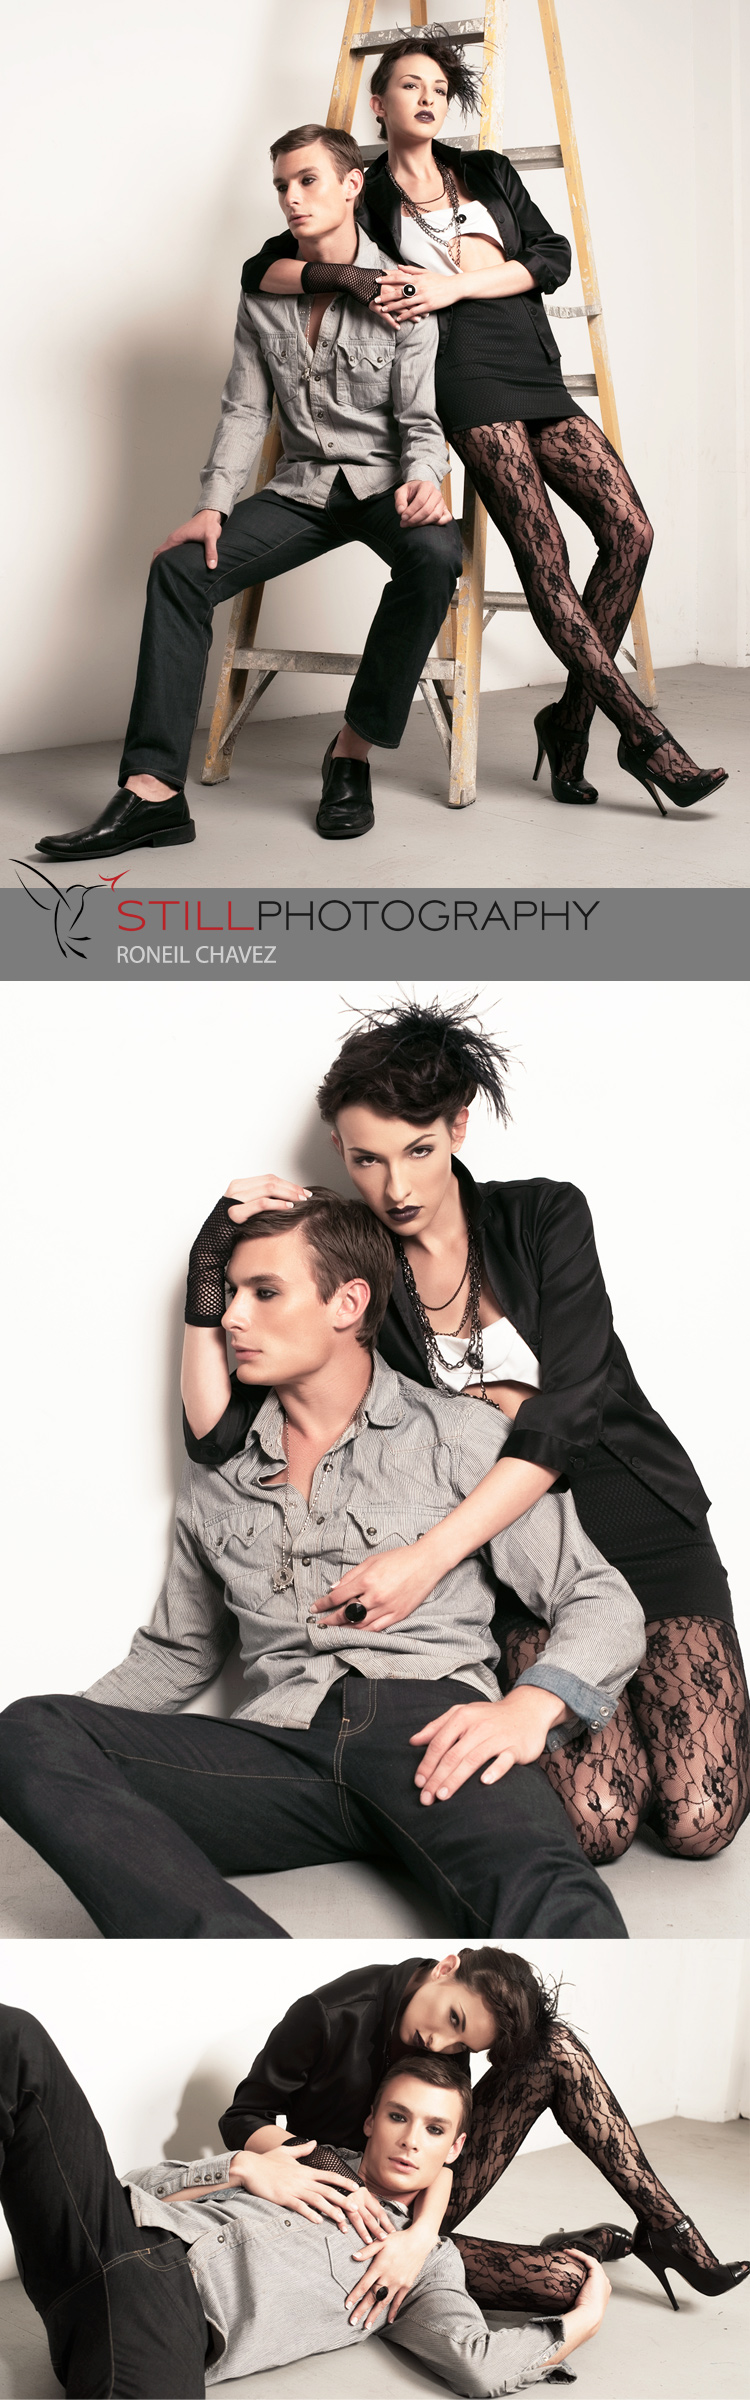 MS studio Apr 18, 2009 Roneil Chavez (Still Photography 2009) Blake and Marlow